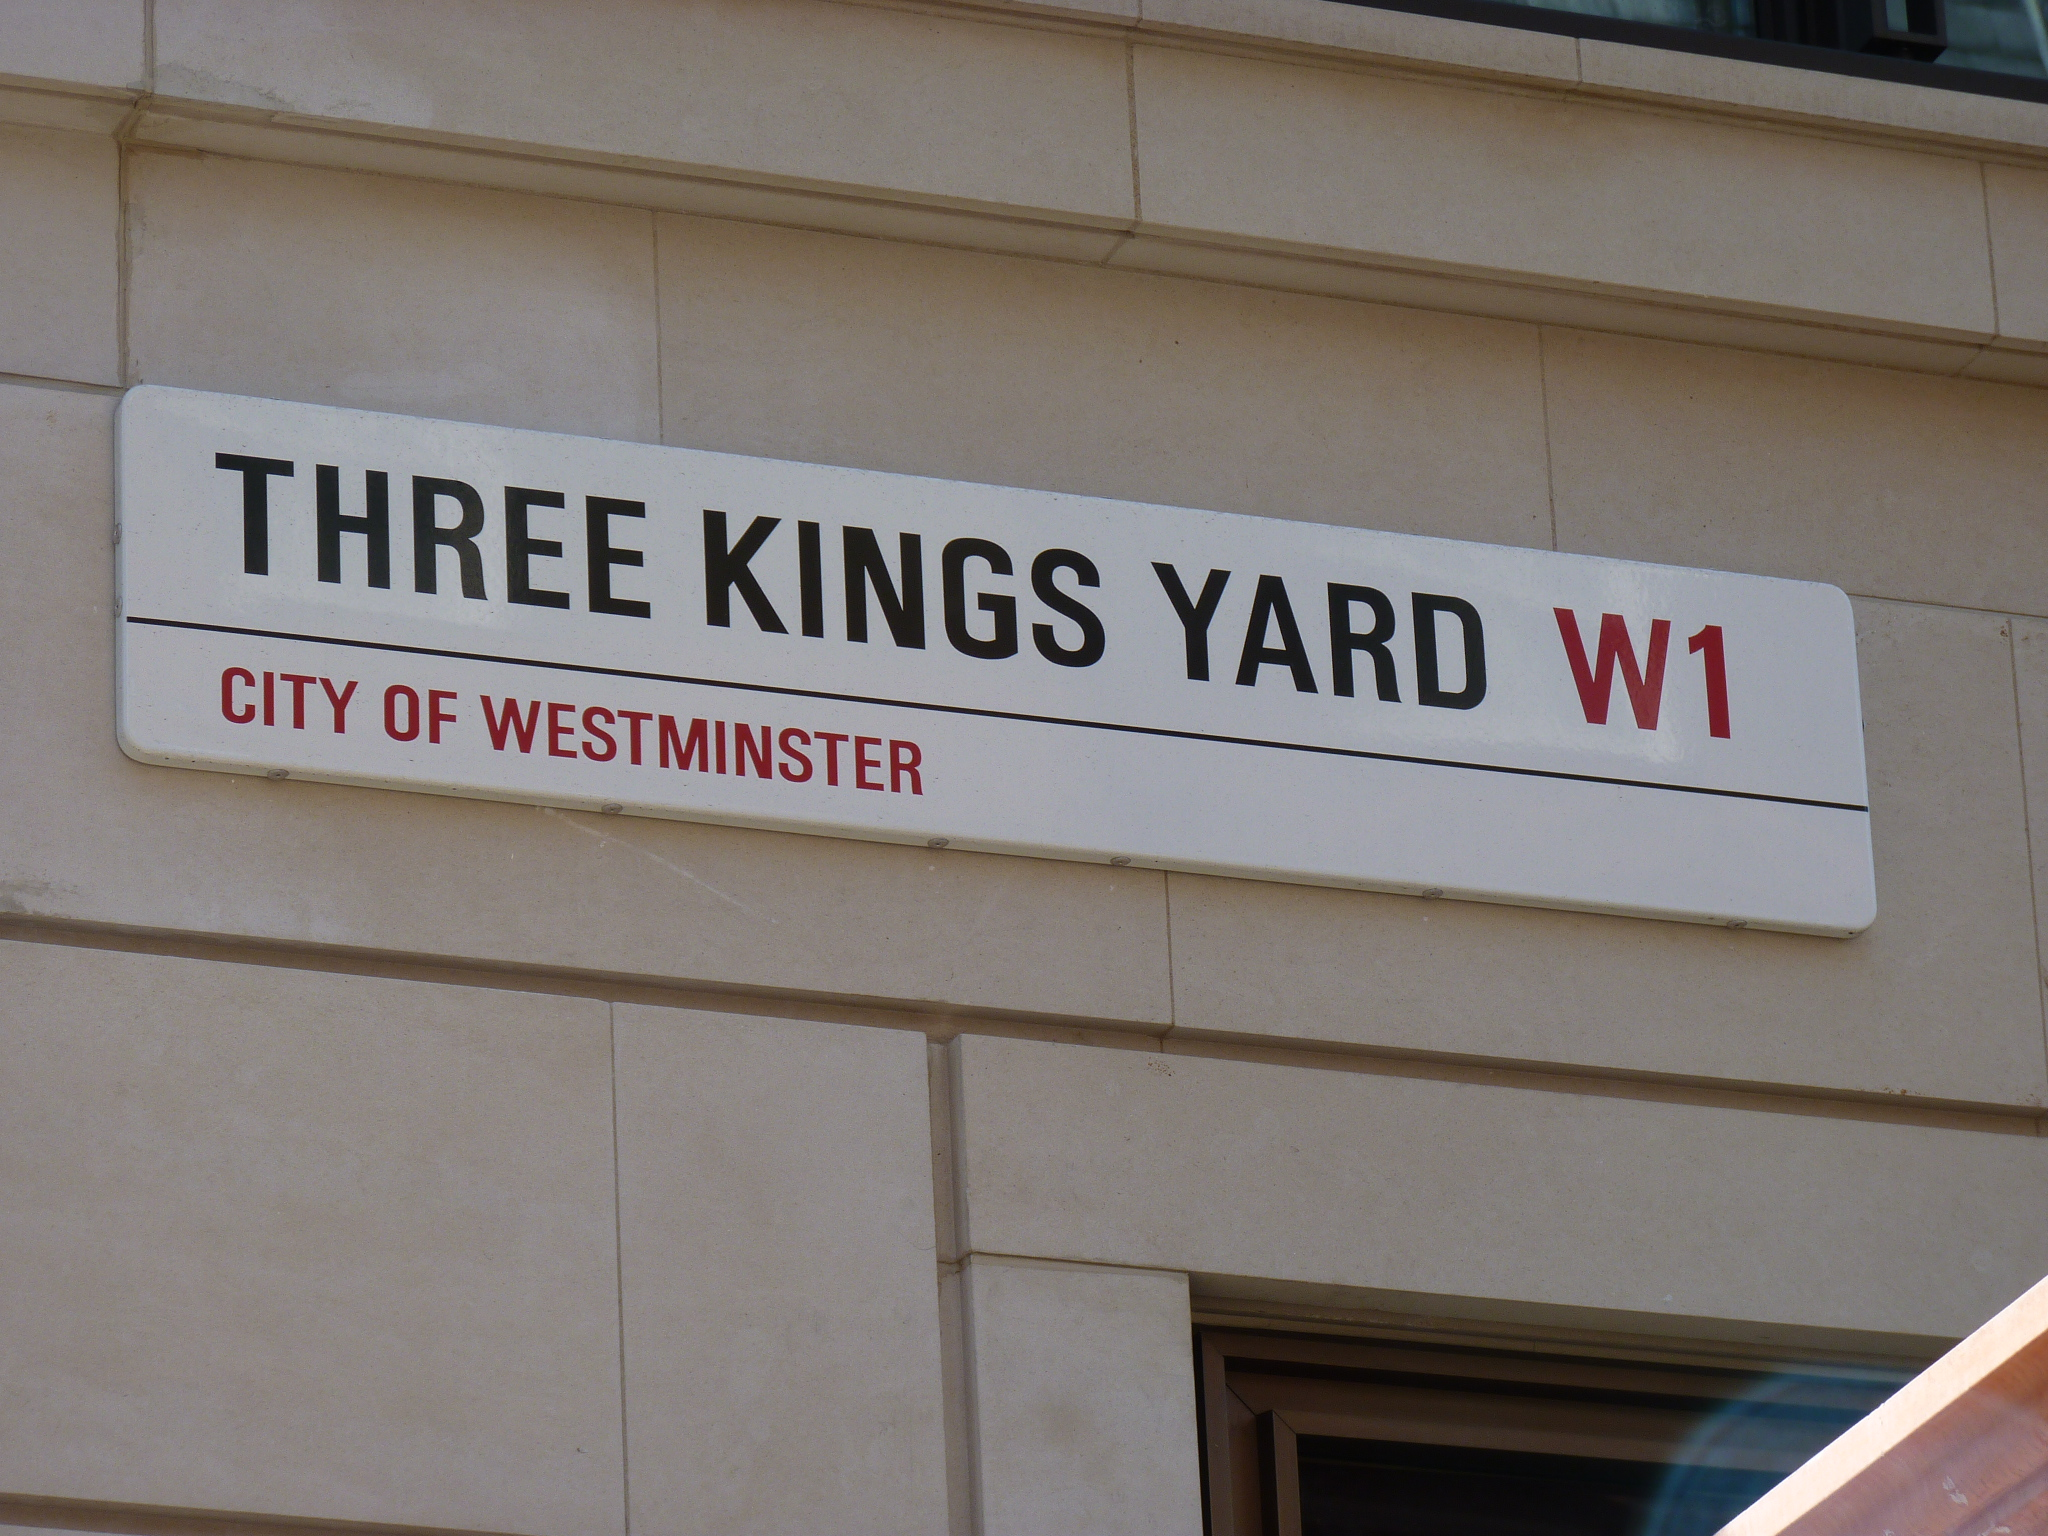 Three Kings Yard, London Street Signage - City of Westminster